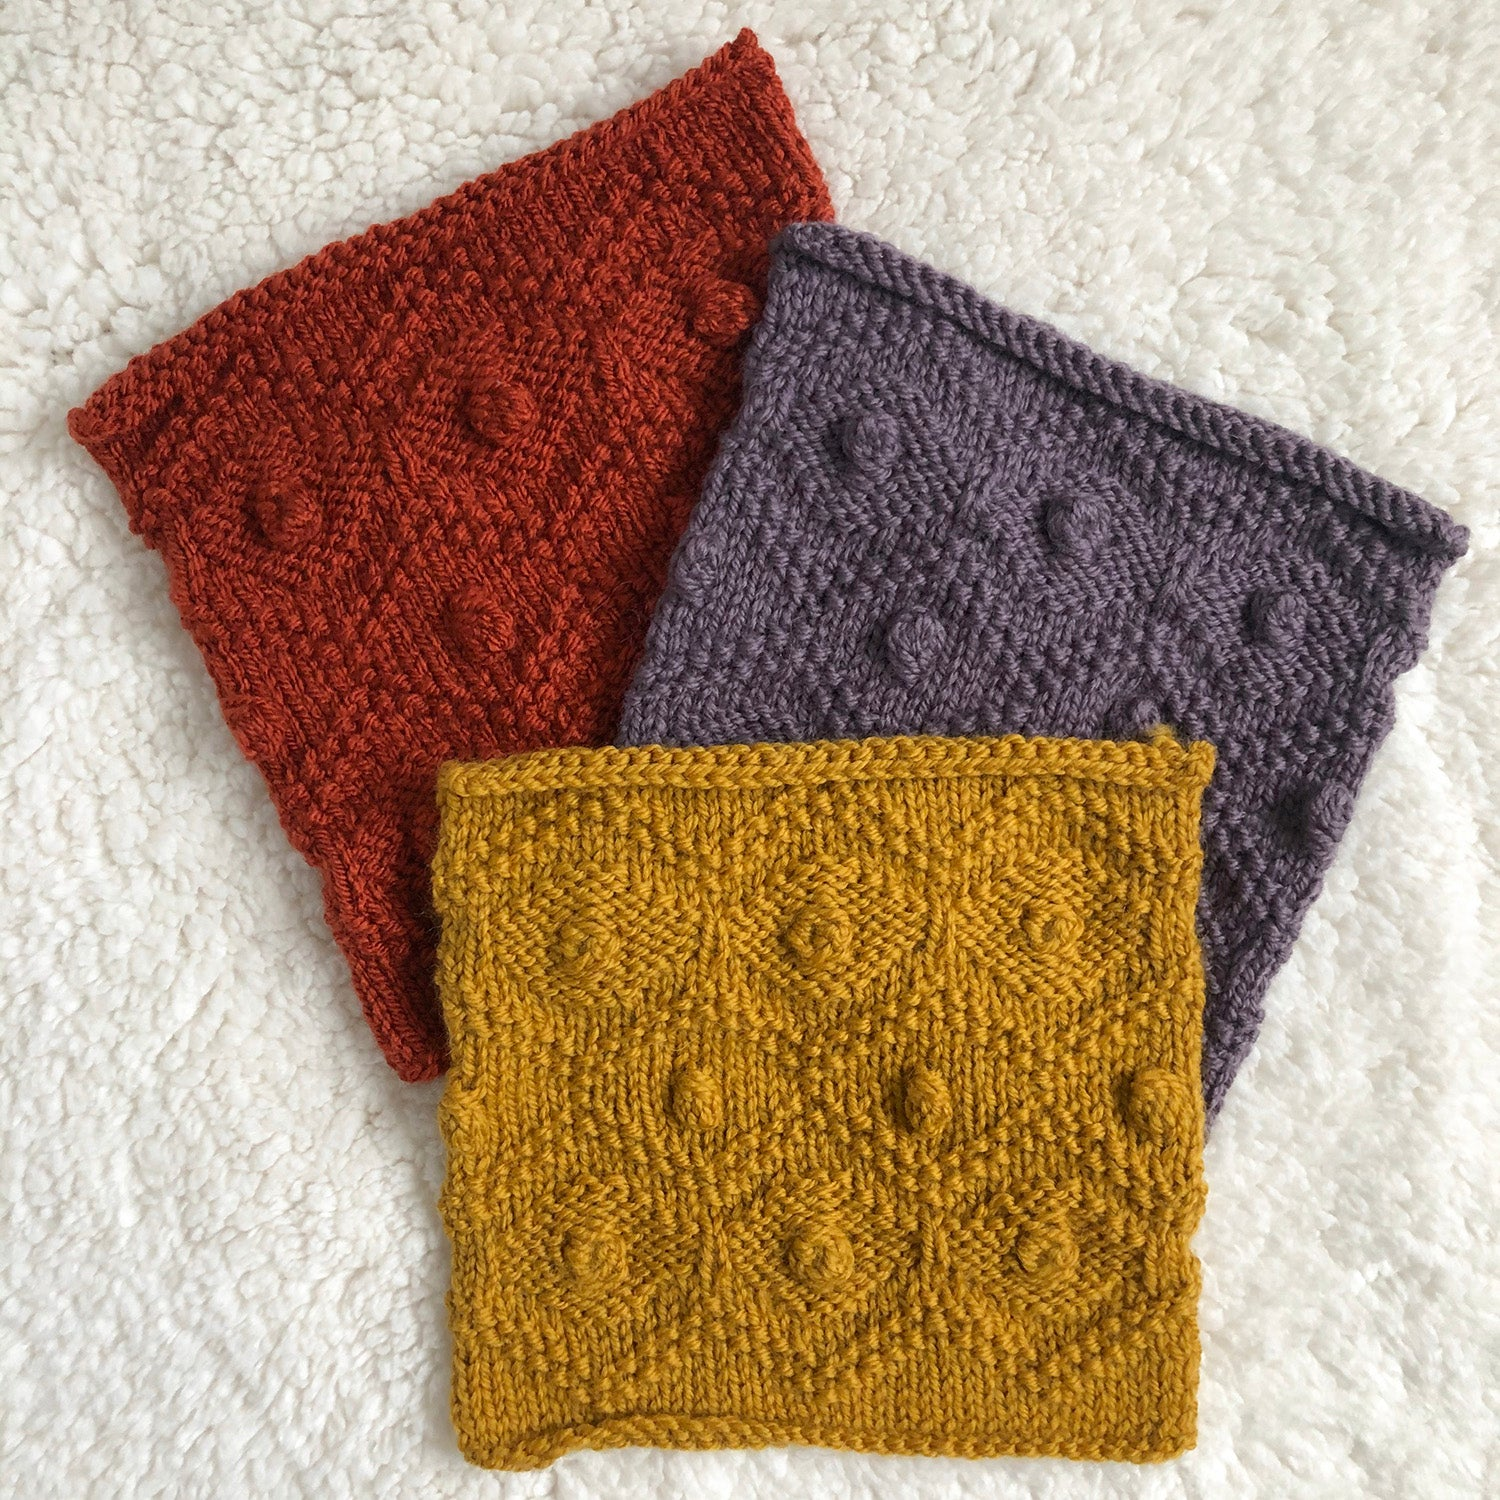 Week 6 Mustard Lane - A Day Out Knit Along Blanket by Sarah Hatton - No turn bobble